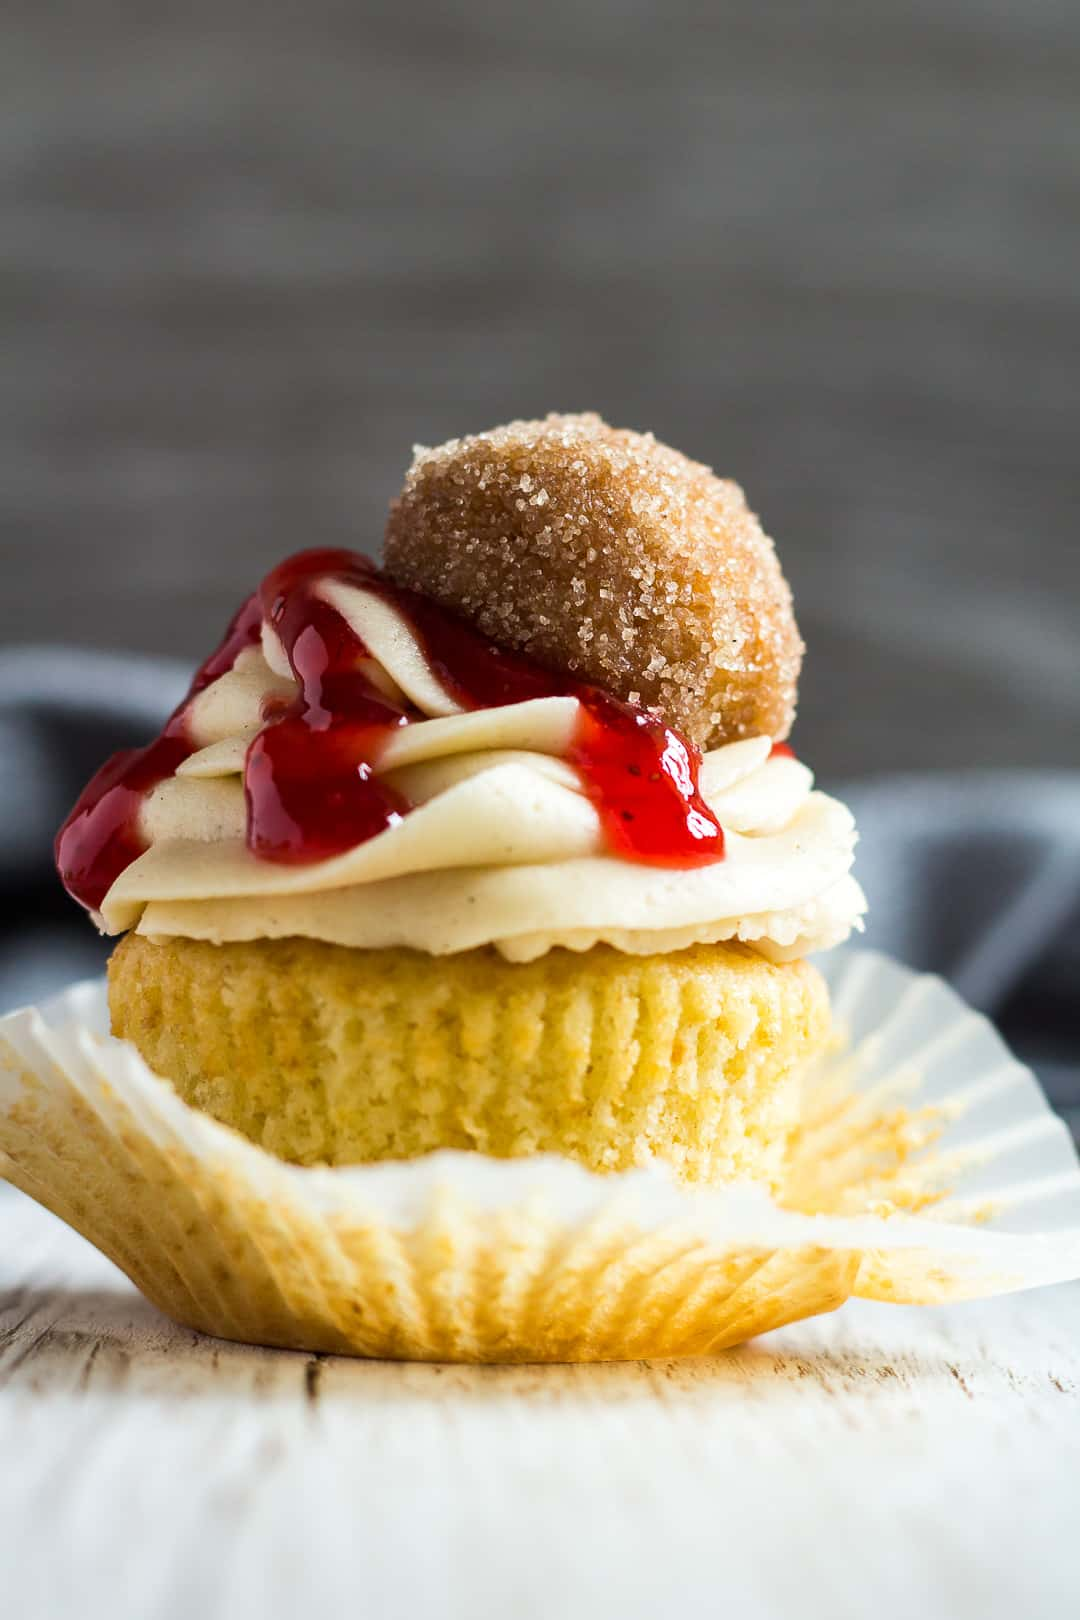 A jam doughnut cupcake with the wrapper peeled off.